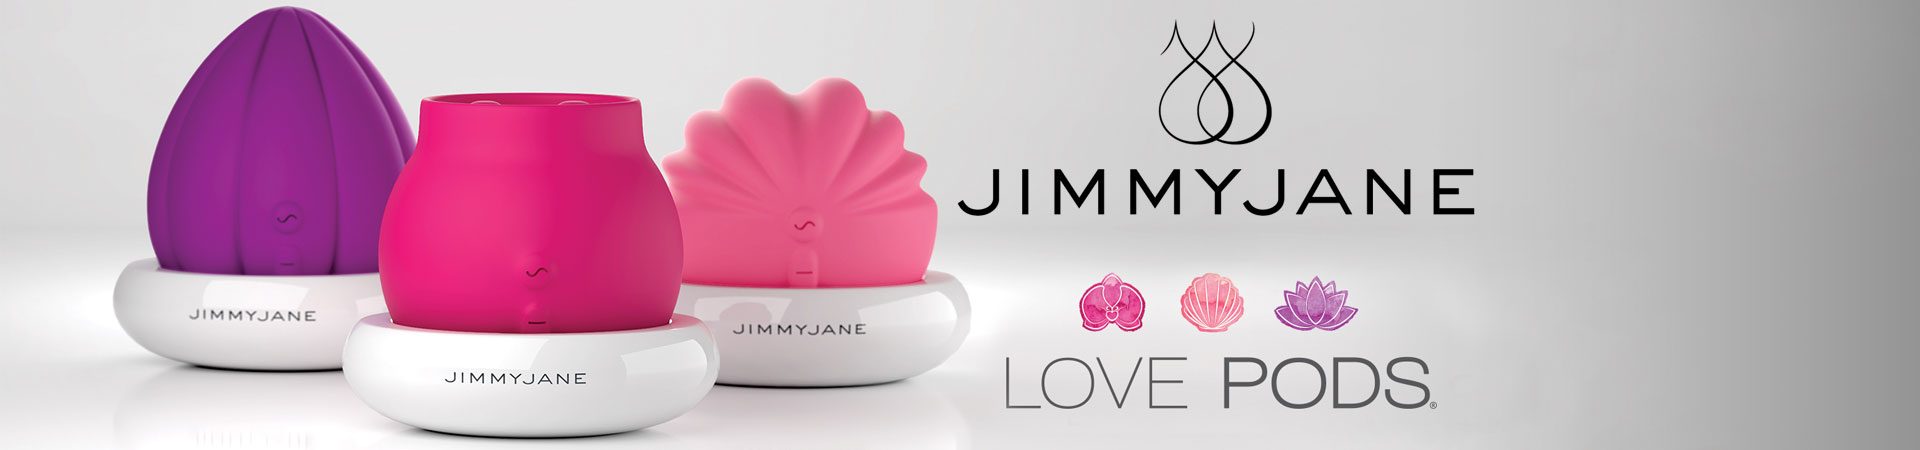 New At SheVibe! Jimmyjane Love Pods Are Your Gift Of Blissful Fulfillment & Pleasure!